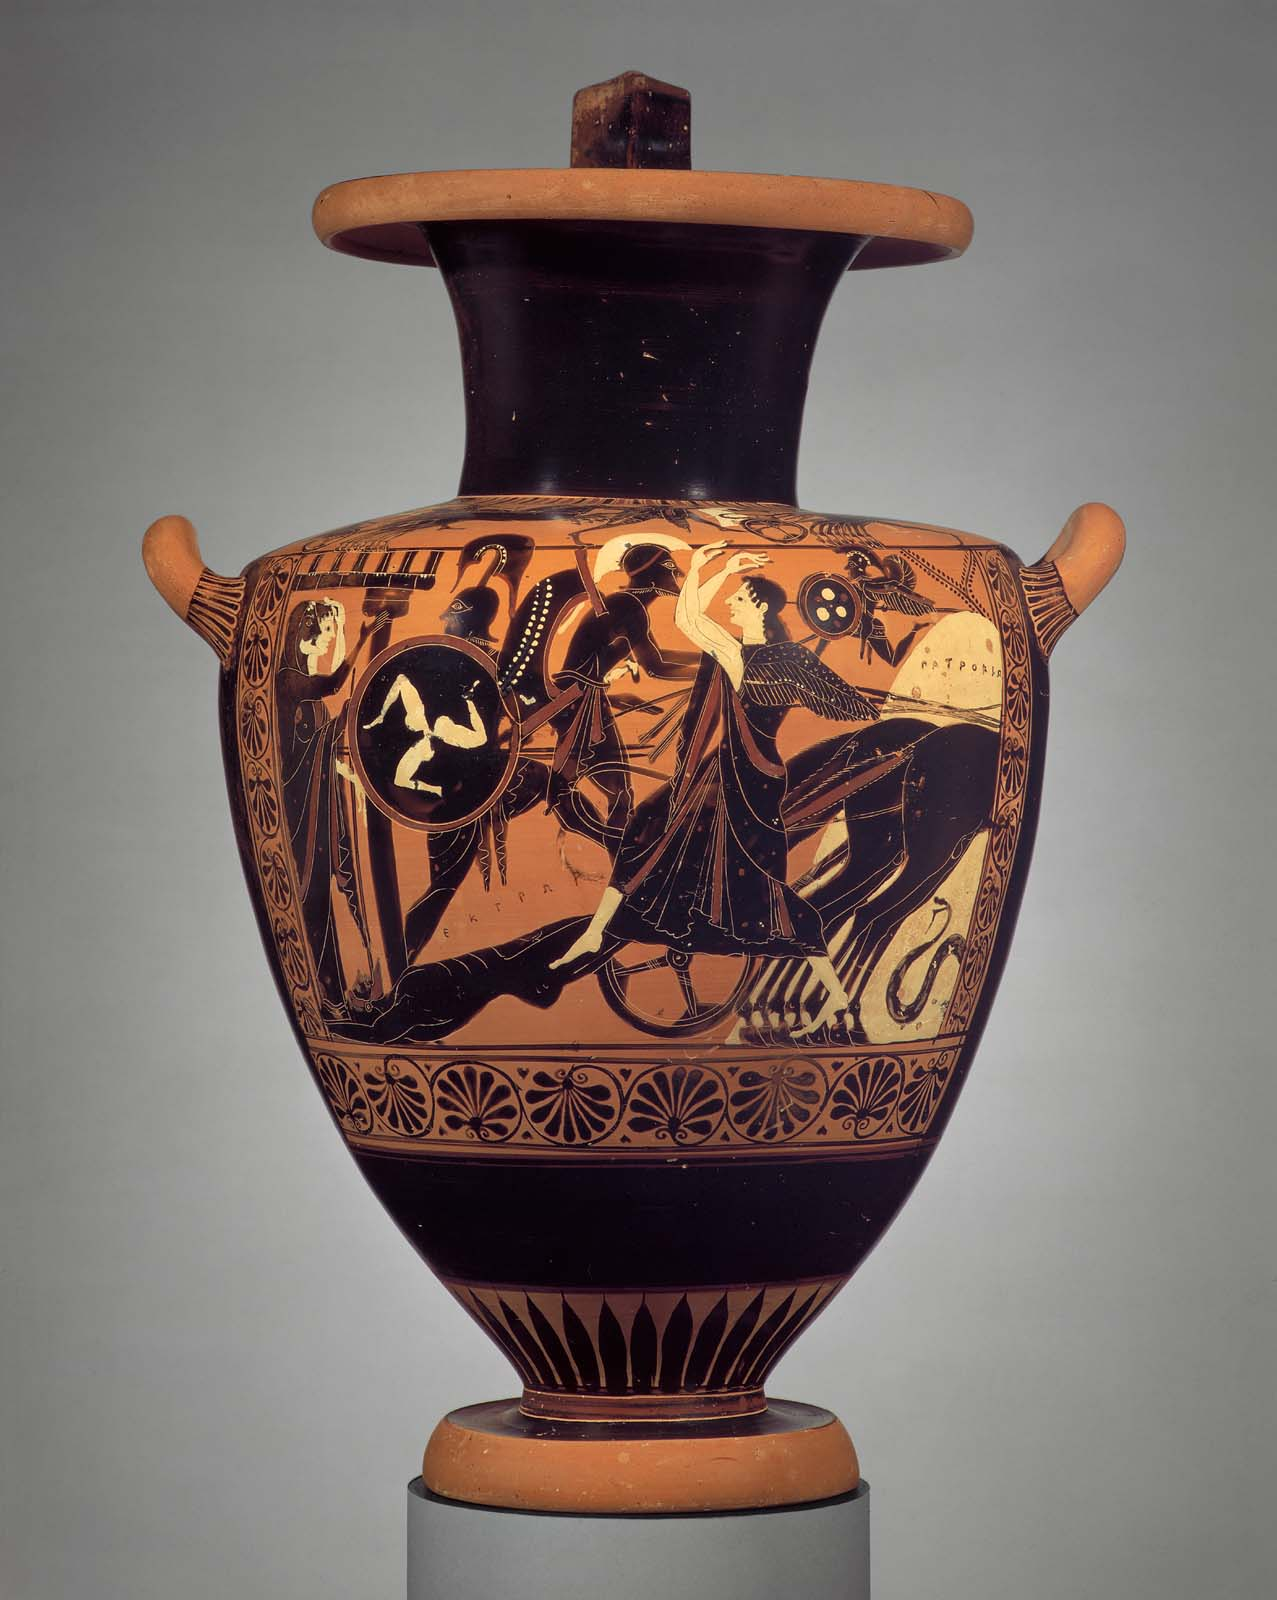 Figure 7: Achilles (the figure stepping into the chariot, holding a shield) drags Hector.